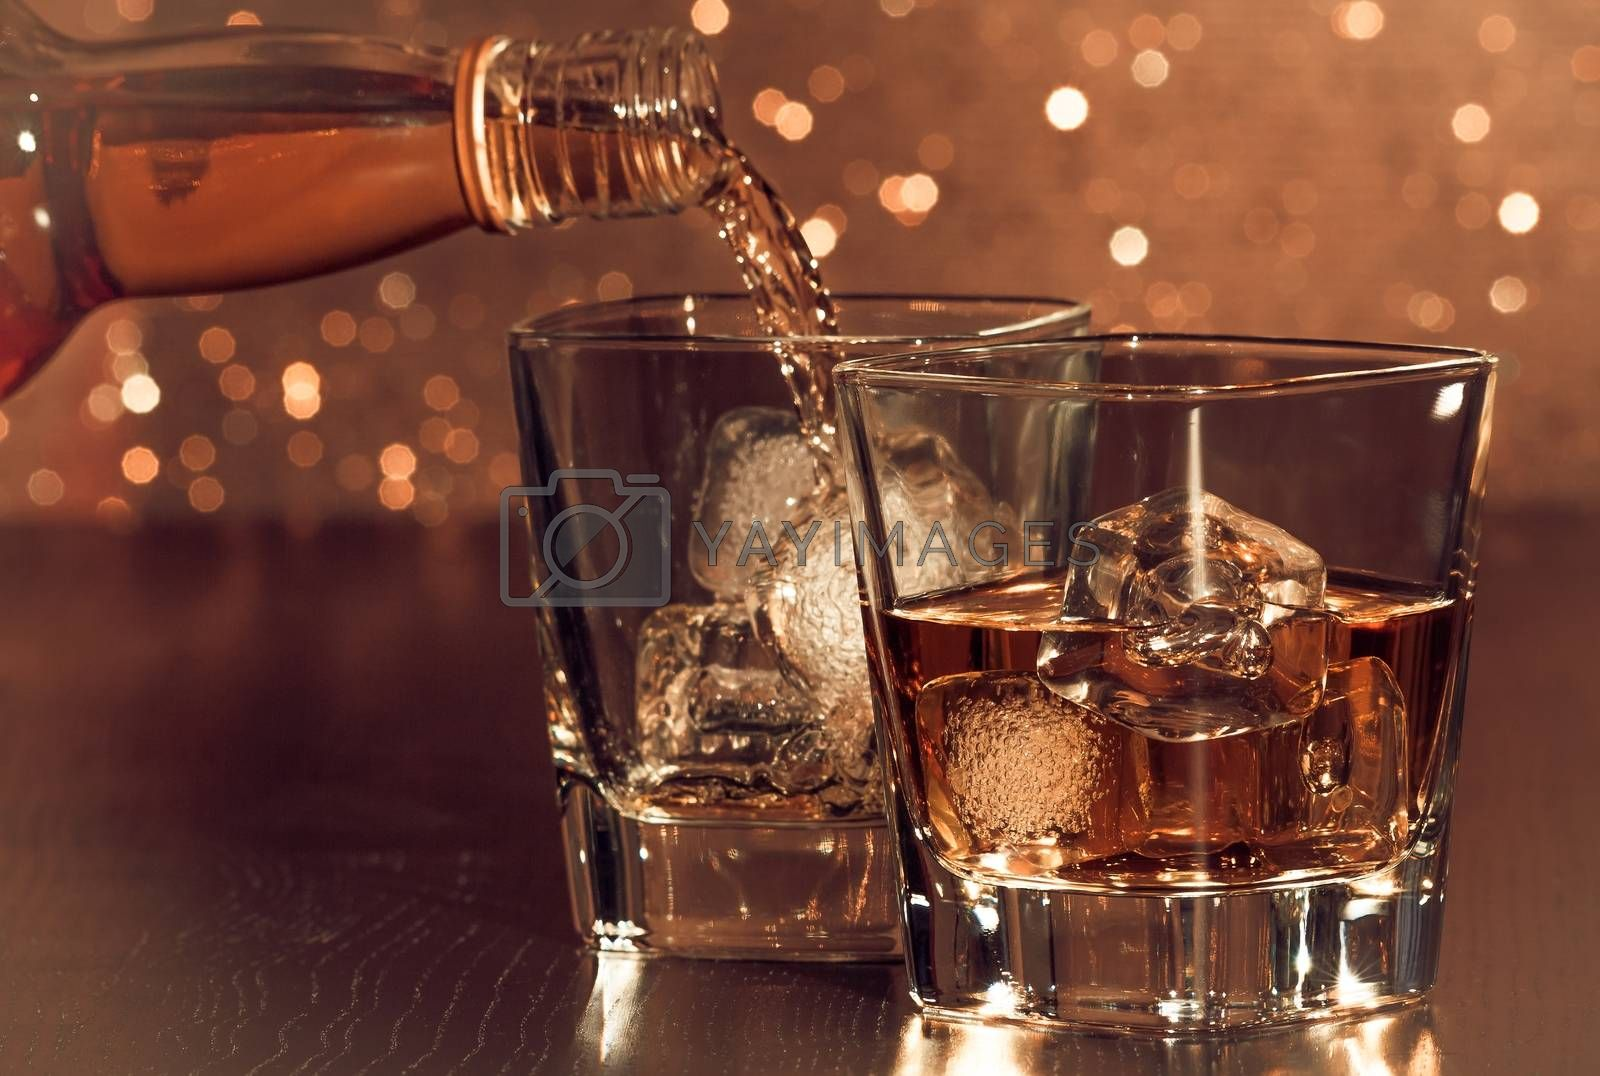 barman pouring whiskey behind whiskey glass by donfiore